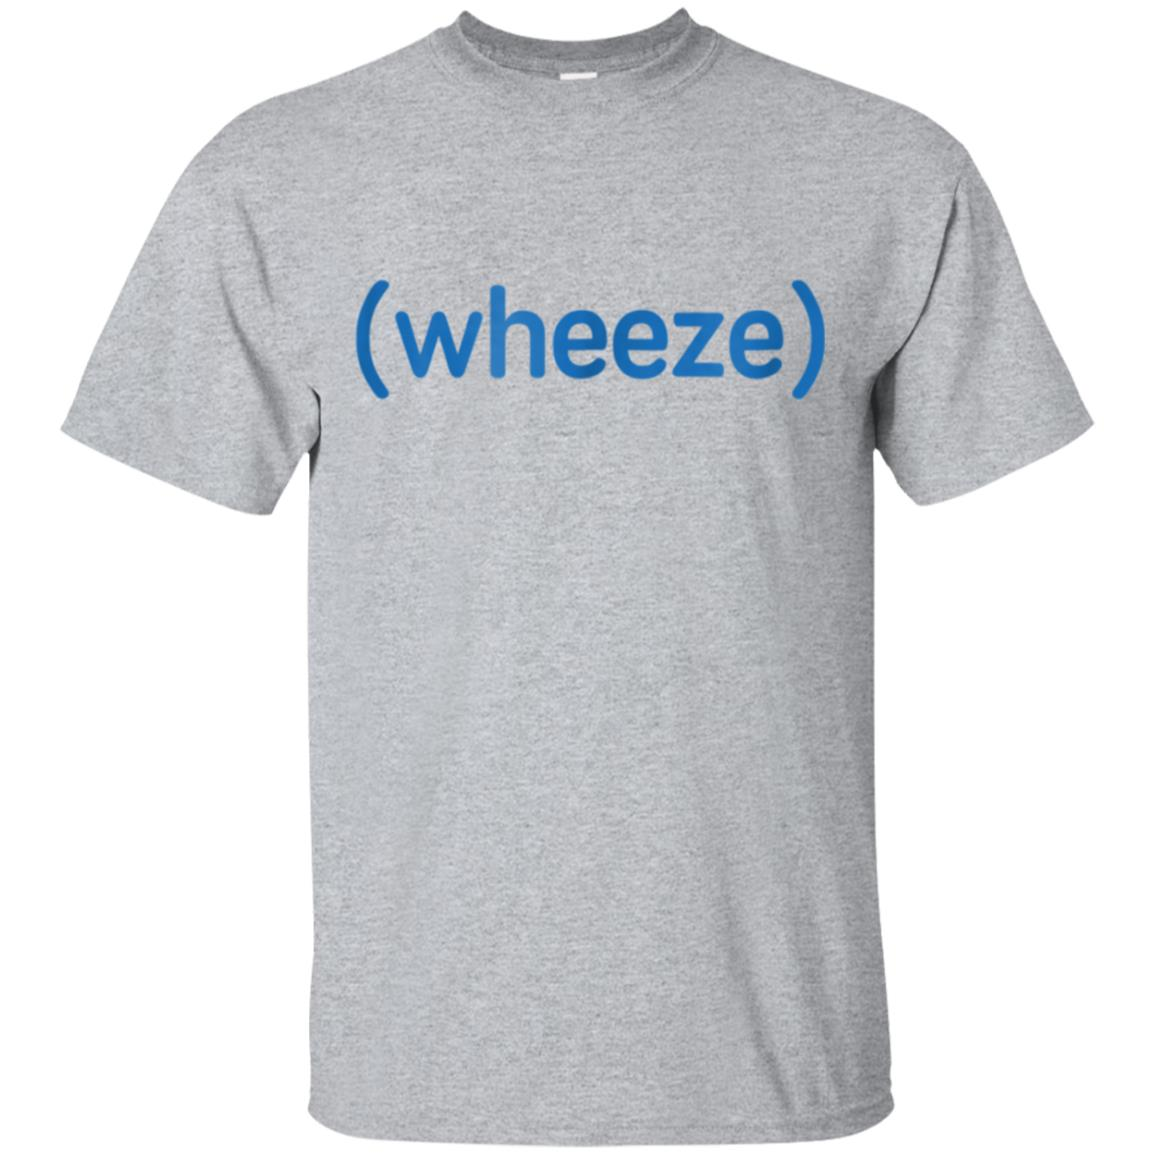 BuzzFeed Unsolved Official (wheeze) T-Shirt 99promocode